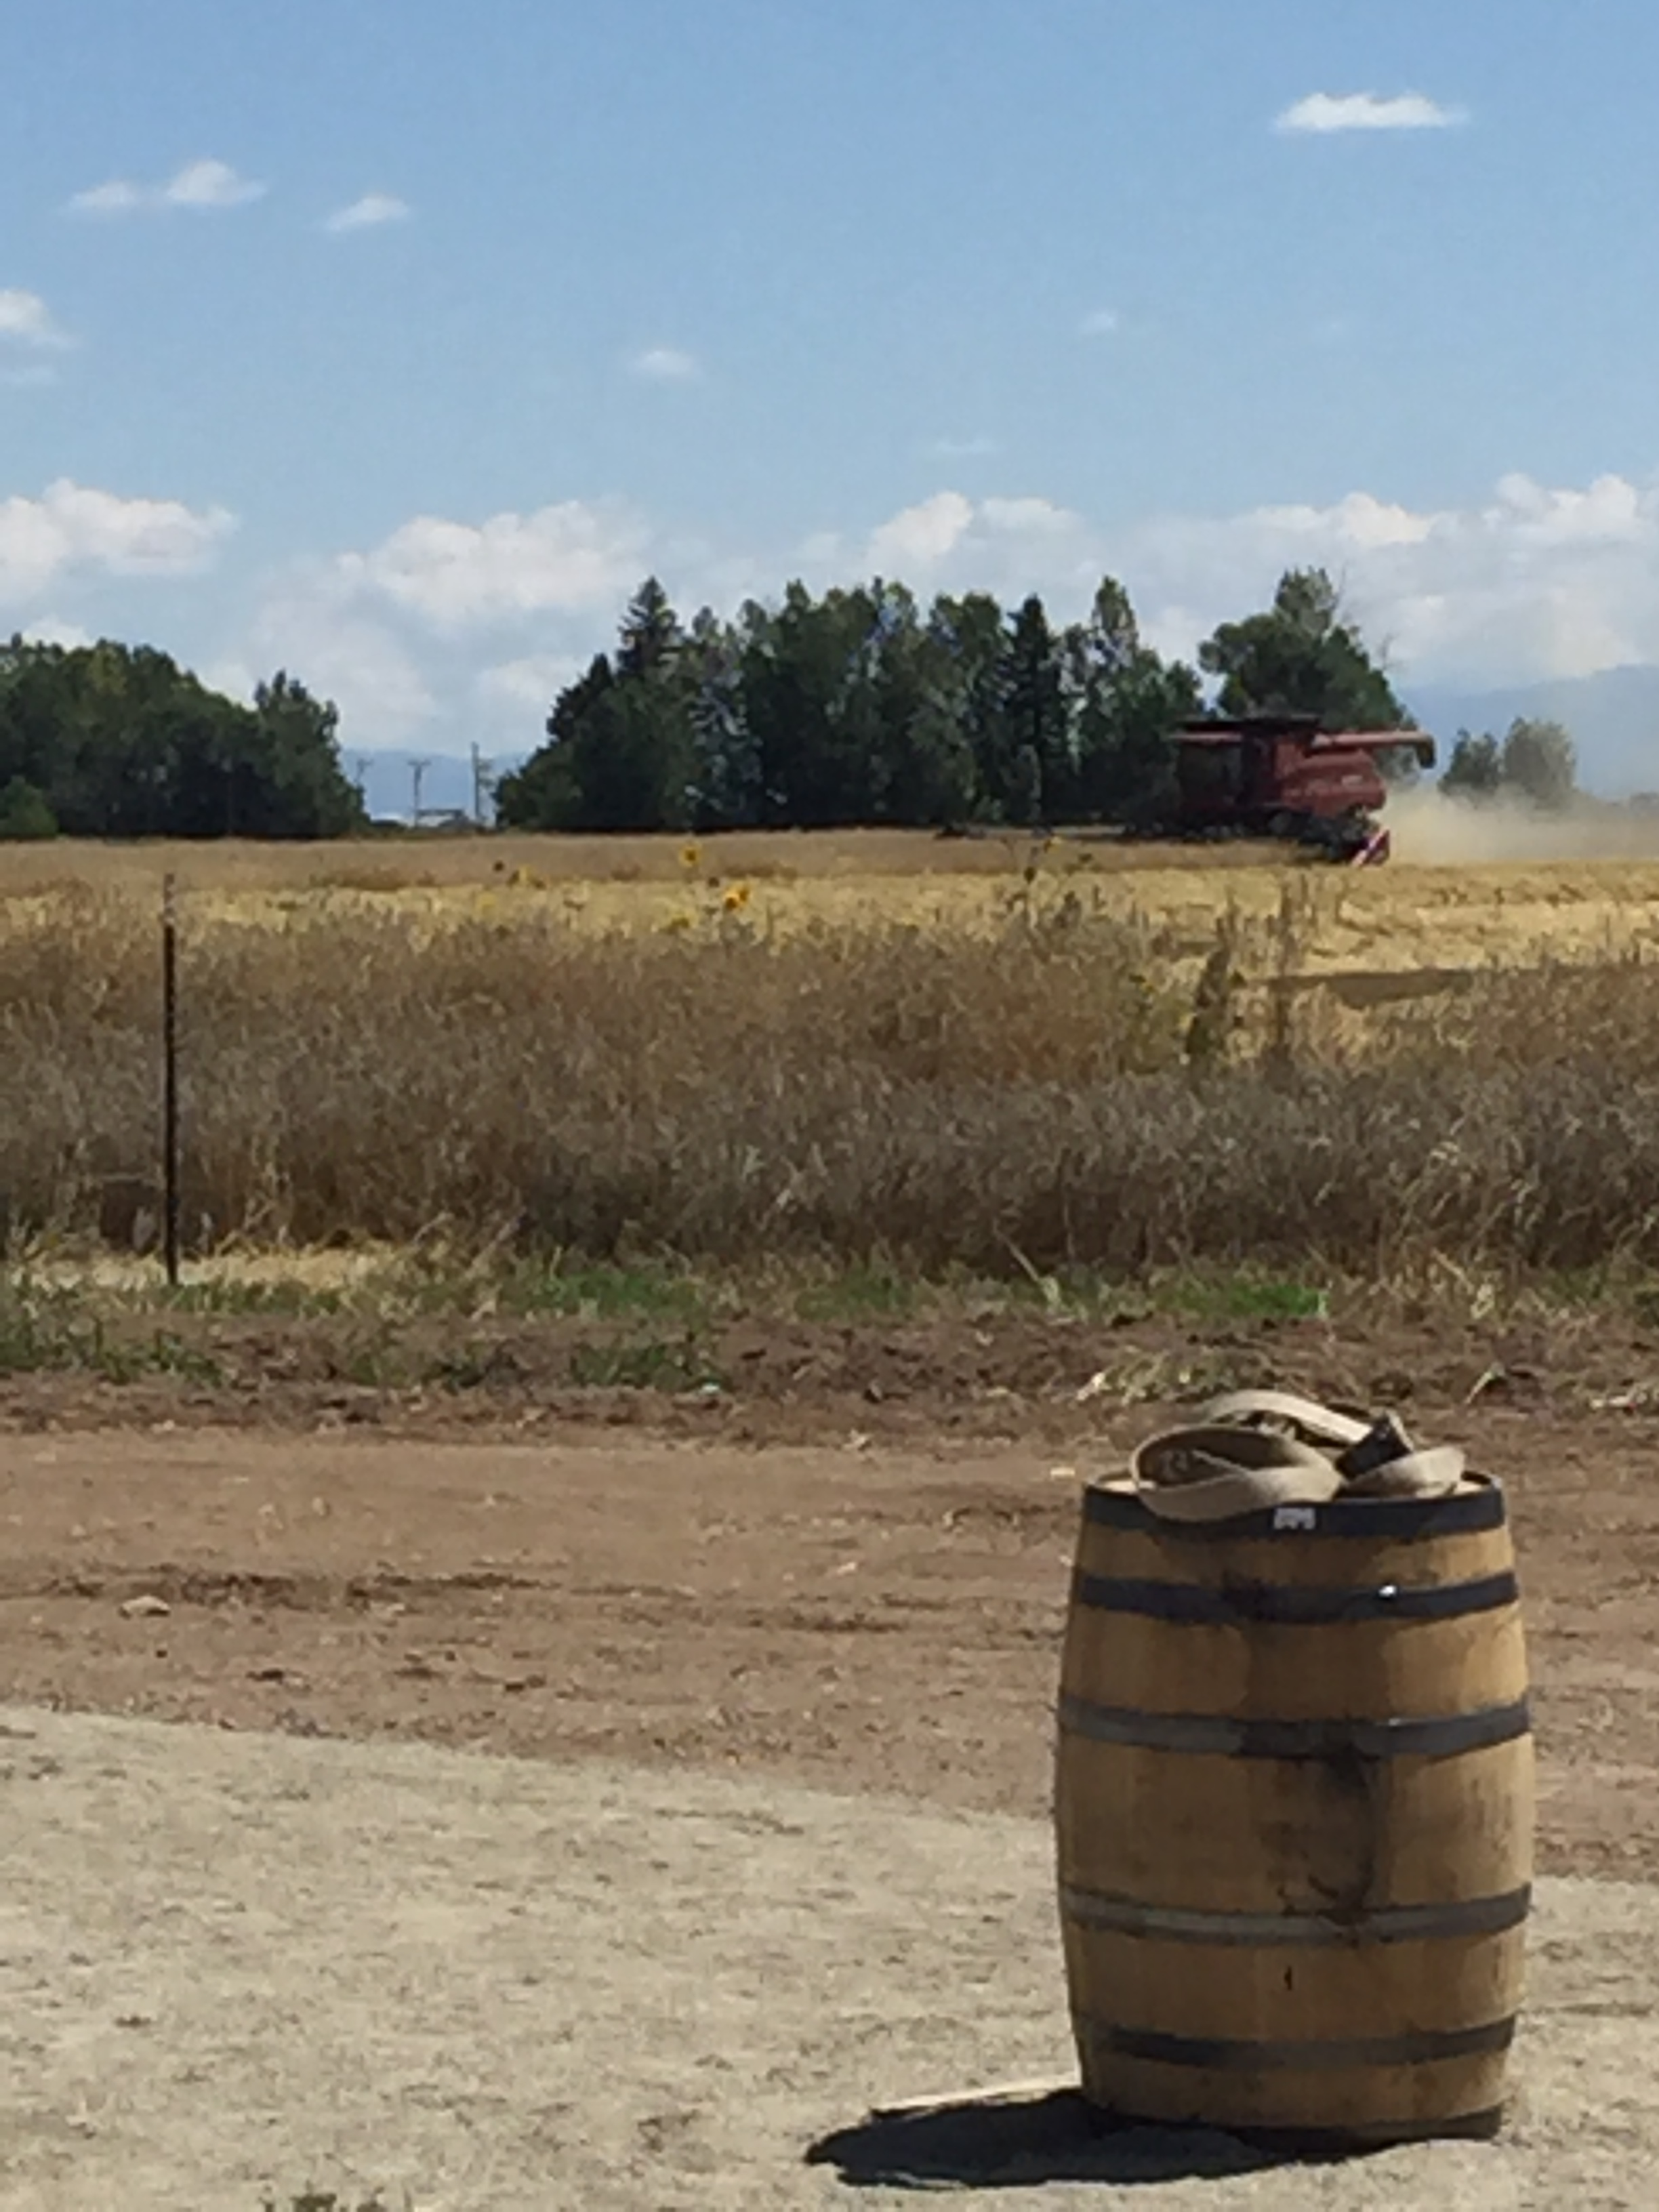 Harvesting the field at The Colorado Farm Brewery